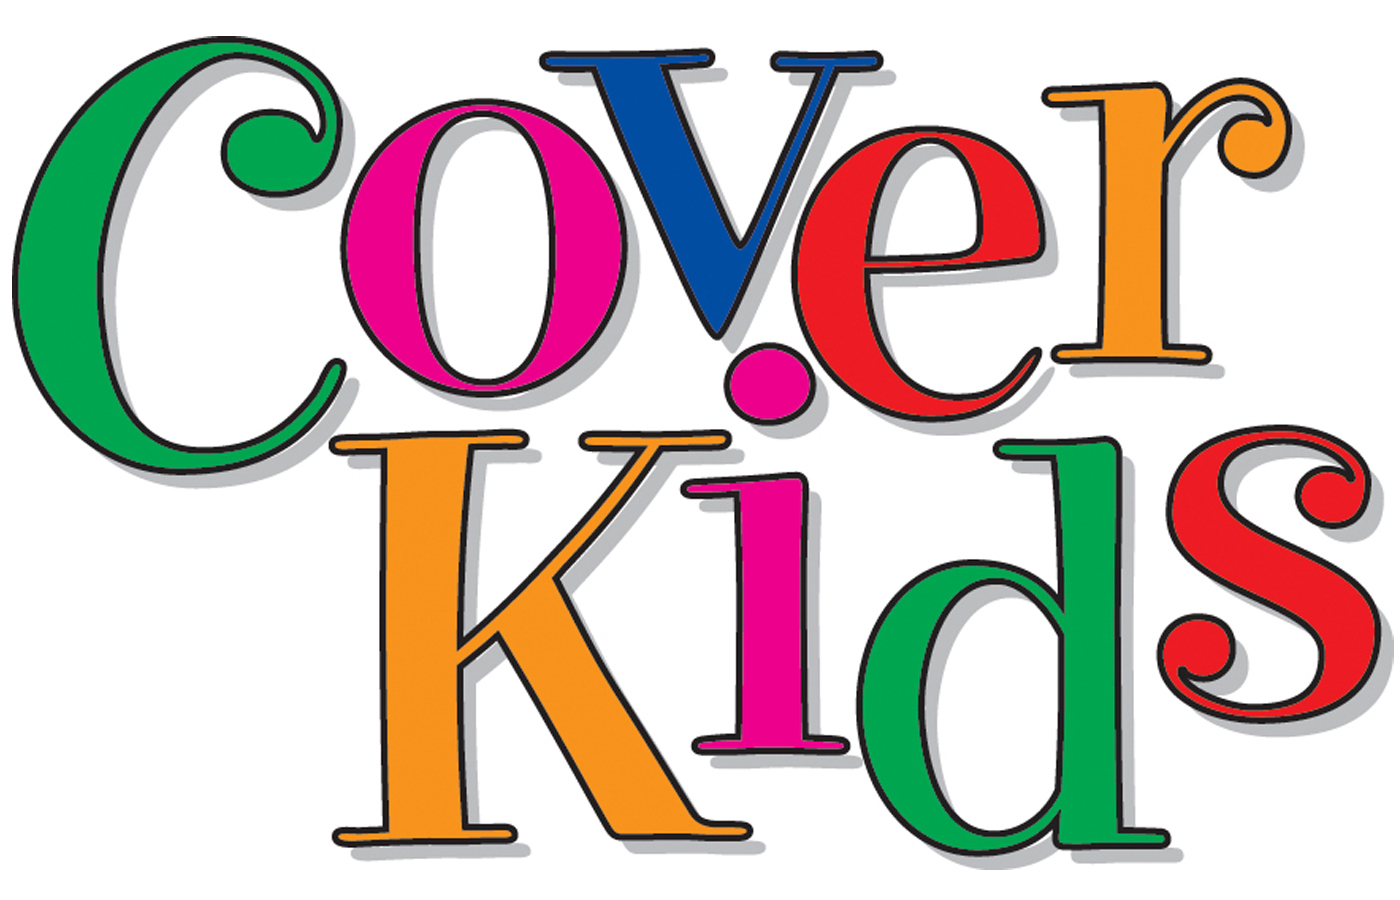 Cover Kids 2019